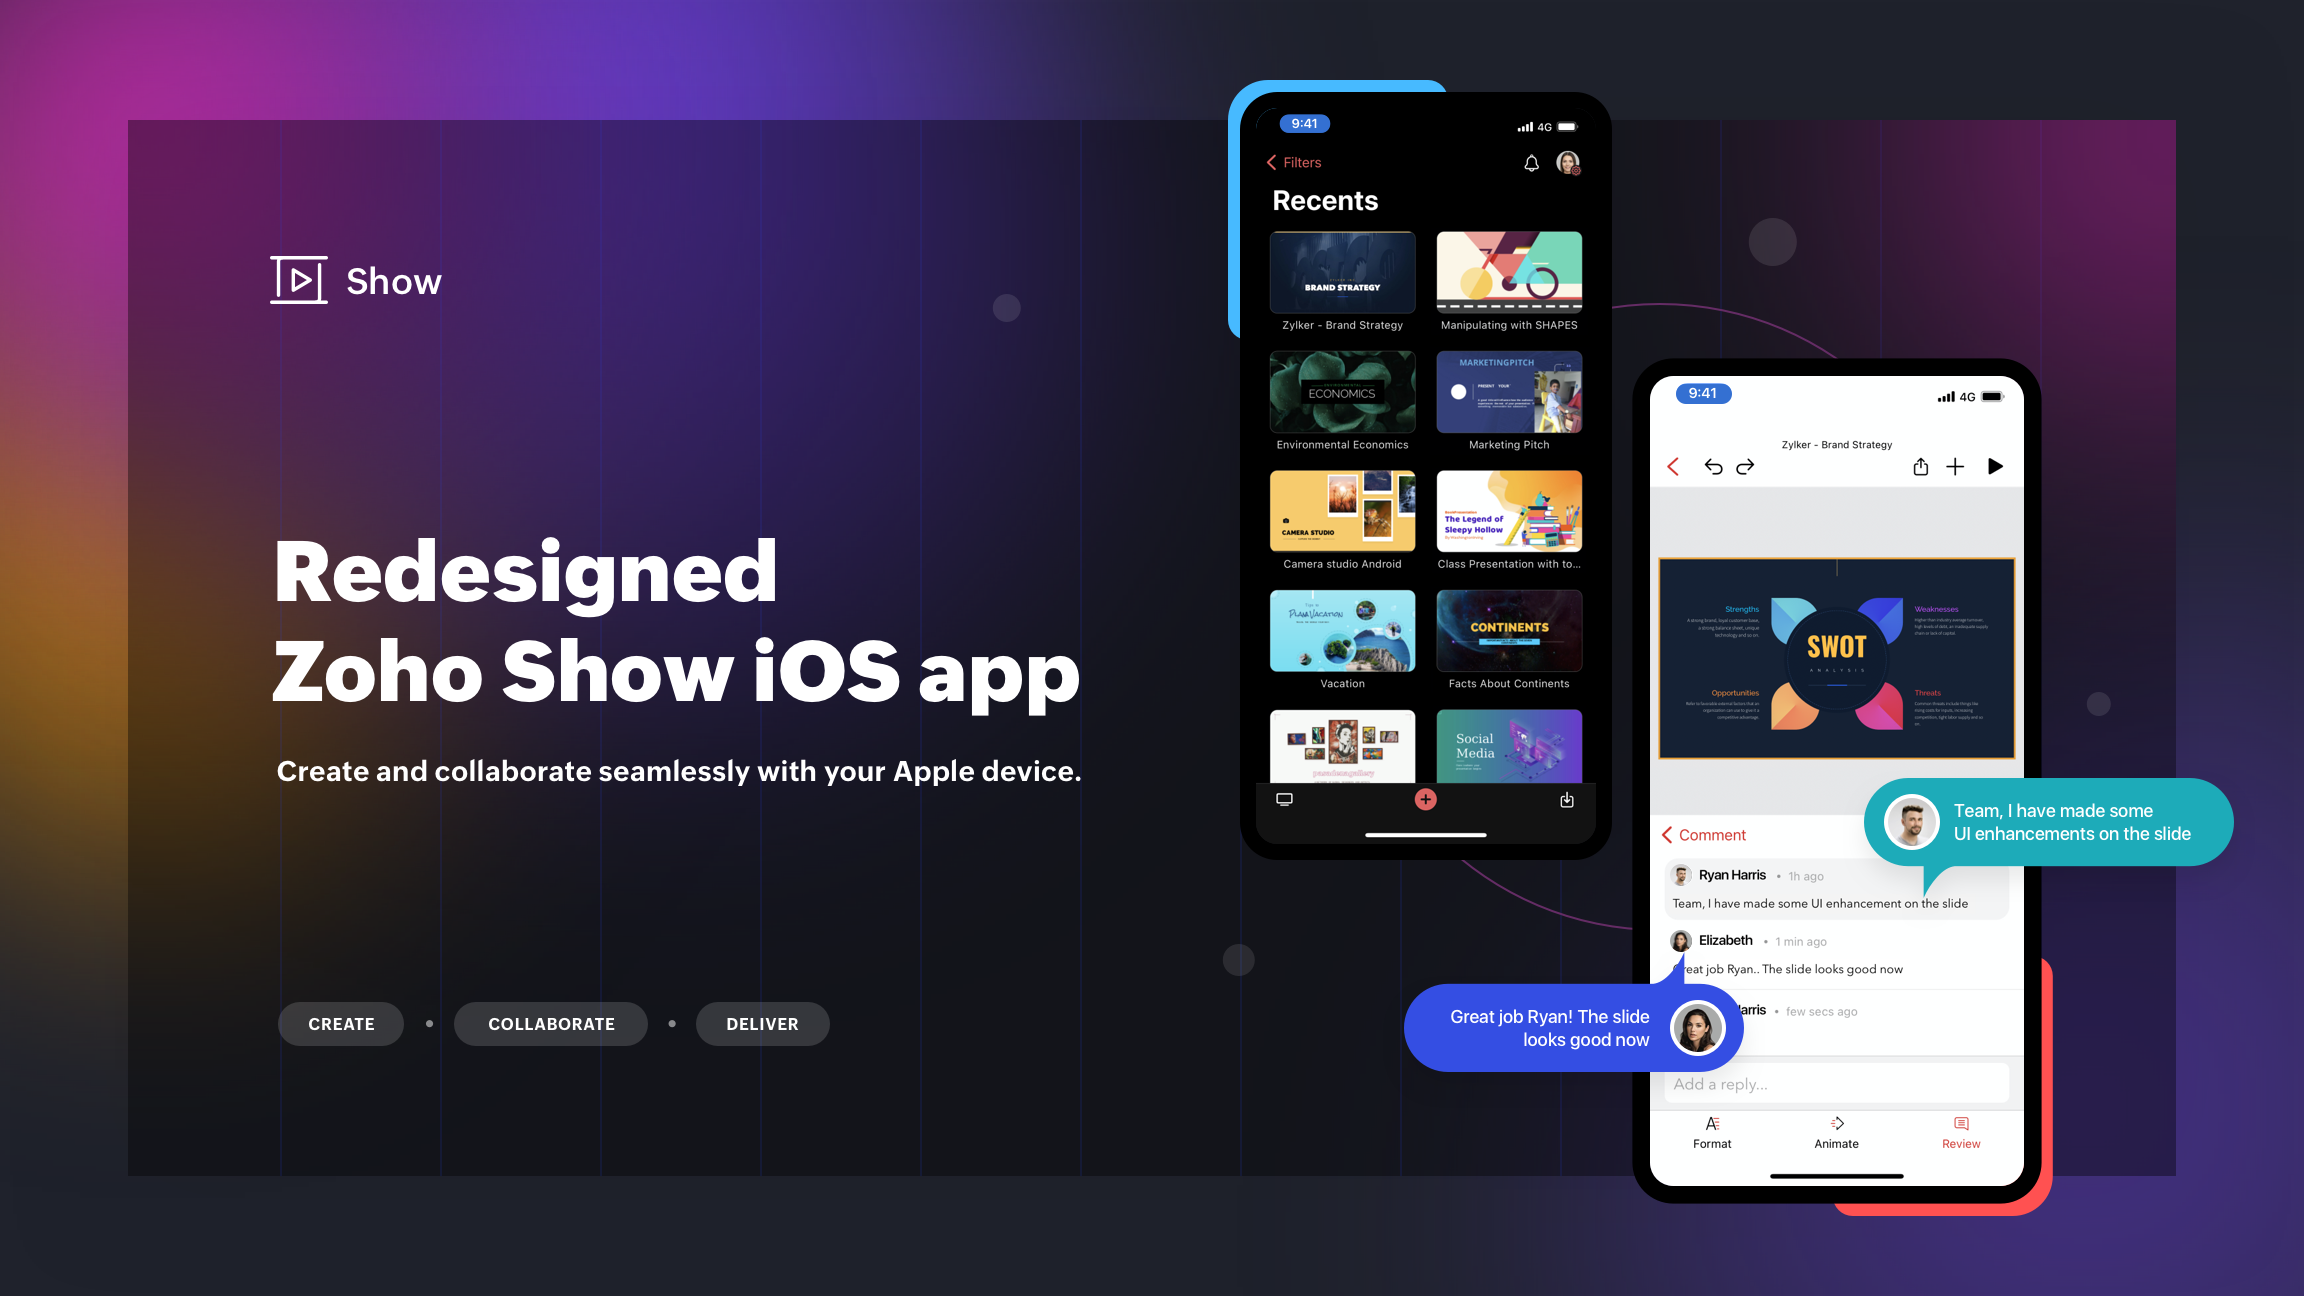 Introducing the Zoho Show iOS app: Redesigned to give you the ultimate presentation creation experience